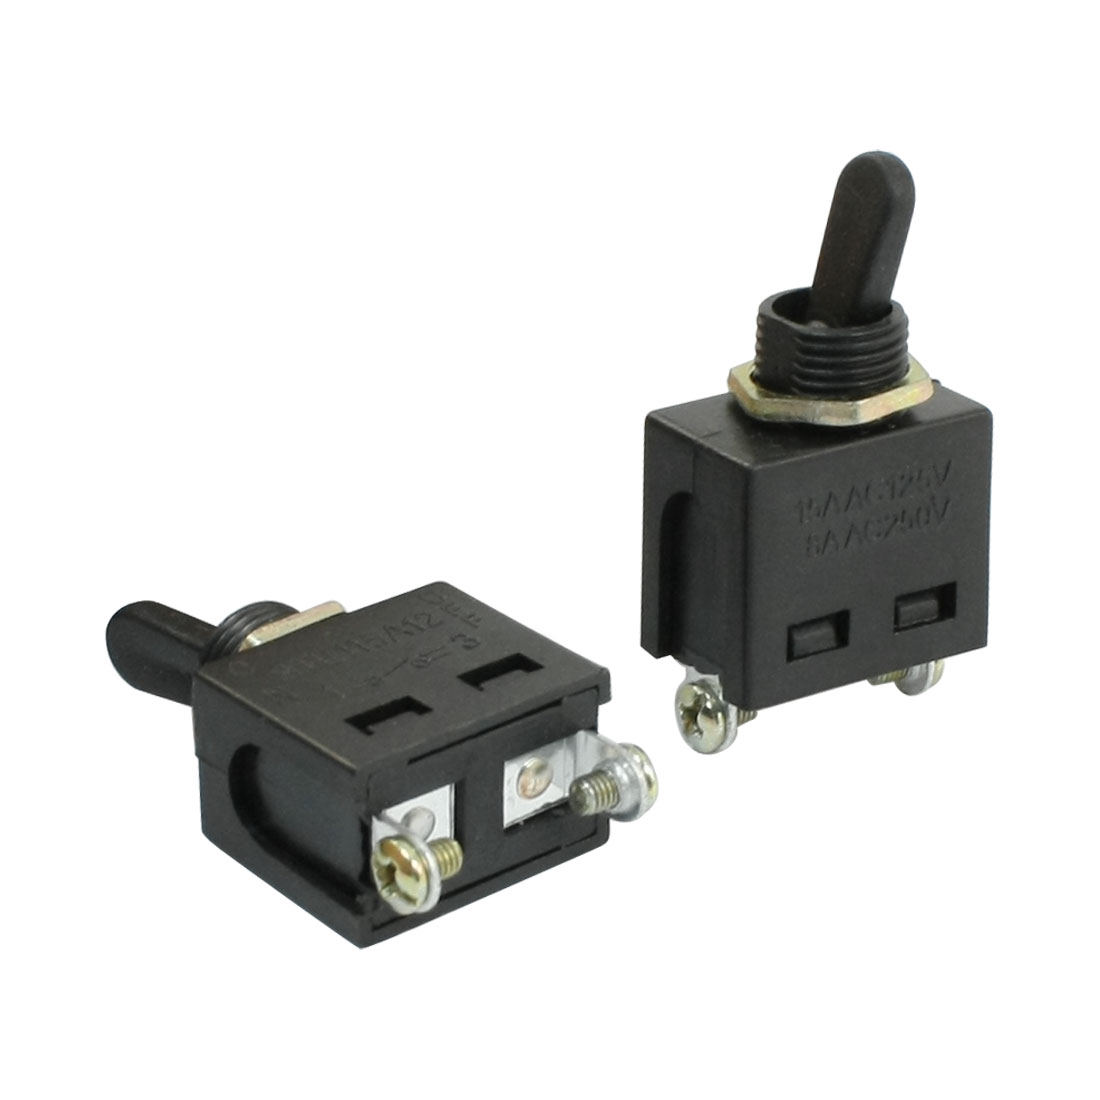 Panel Mounted Wobble Level SPST ON-OFF 2 Position Toggle Switch 2 Pcs